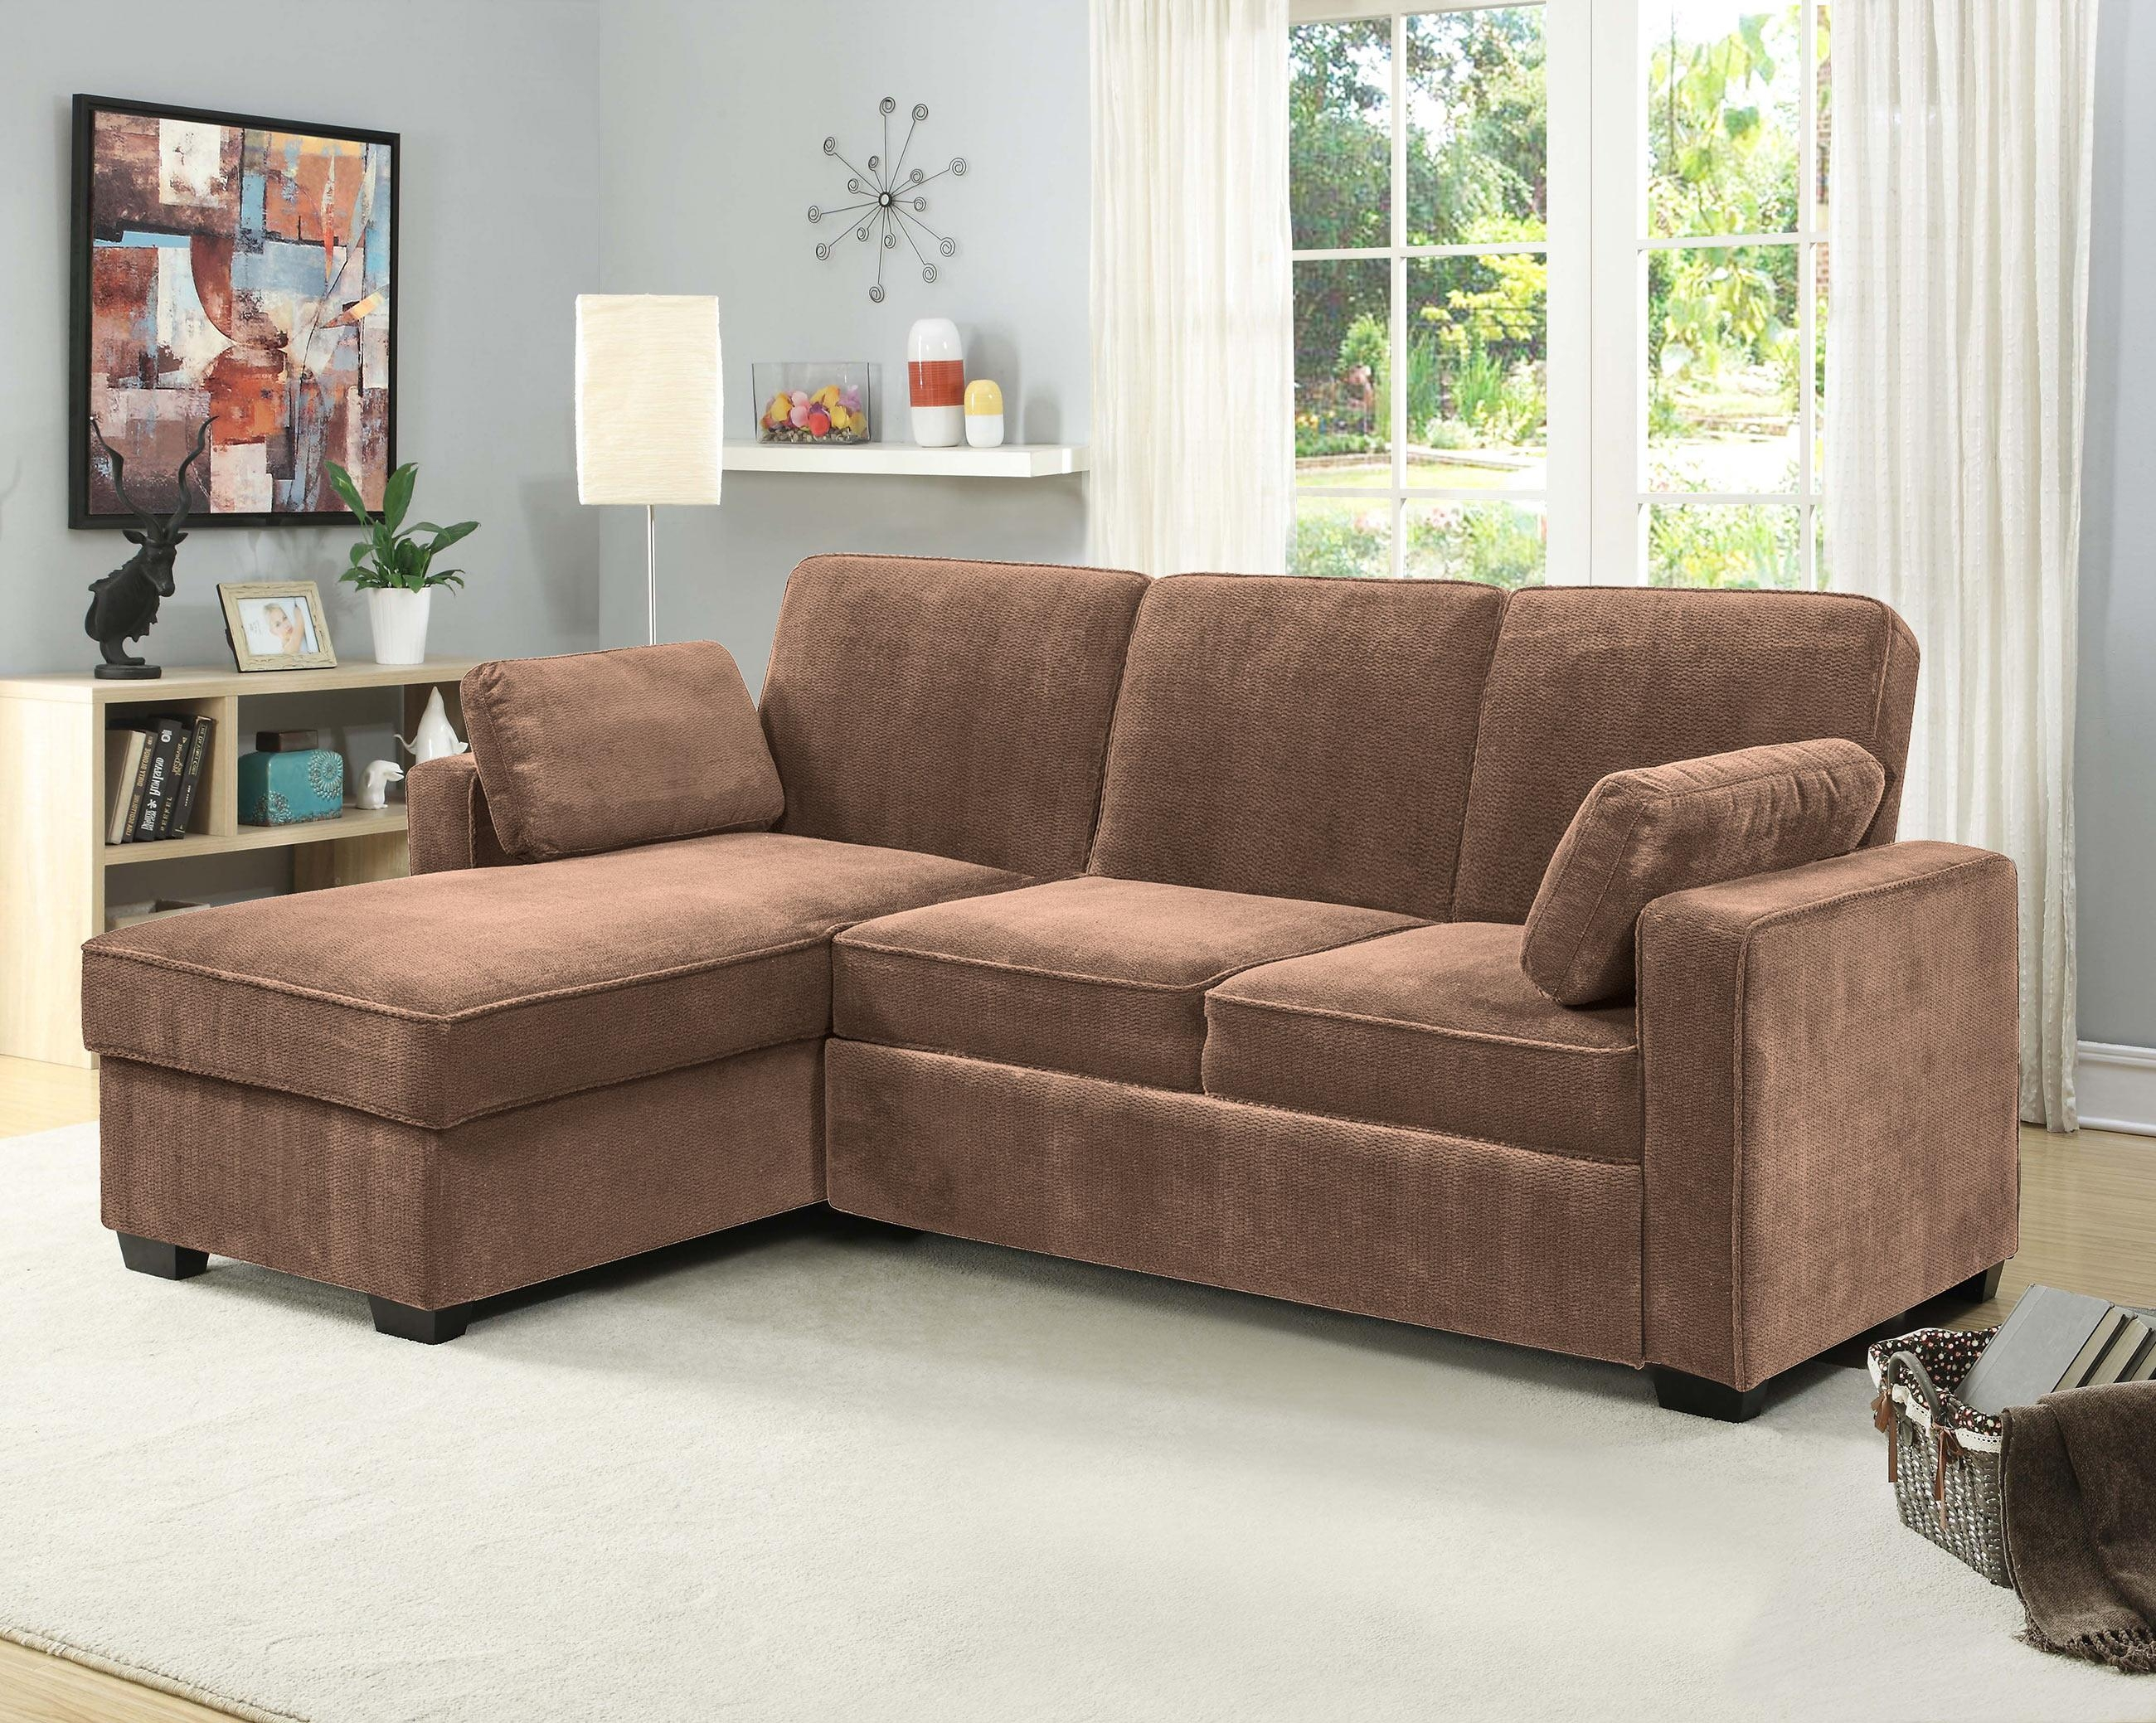 Chaela Sectional Convertible Sofa Light Brownserta / Lifestyle With Serta Sectional (View 7 of 20)